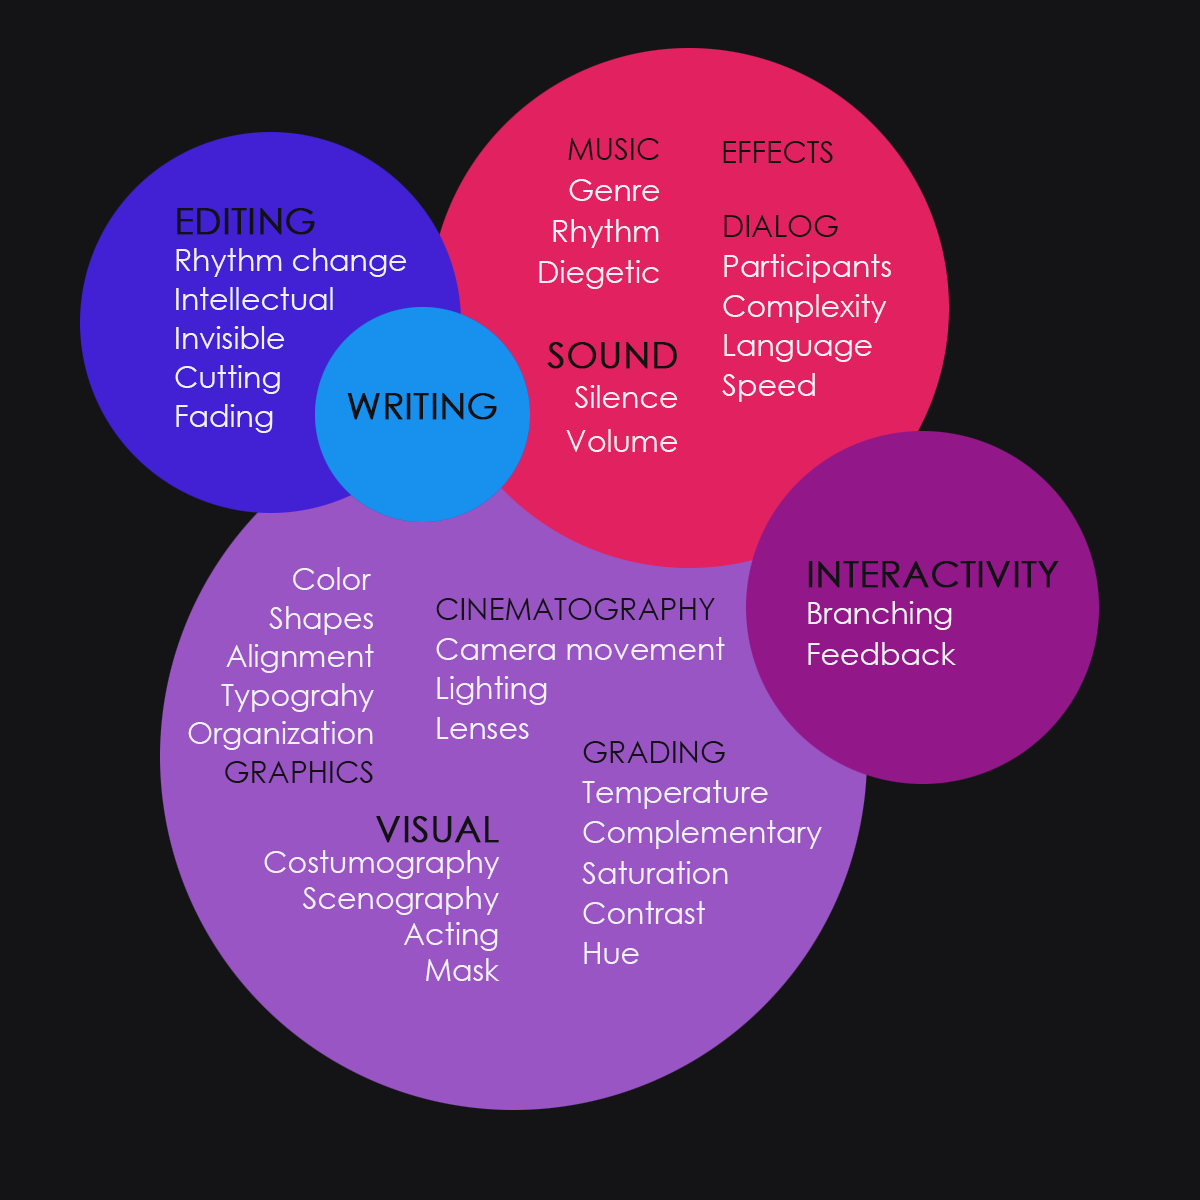 Storytelling with a Chord Diagram and D3.js - Visual Cinnamon